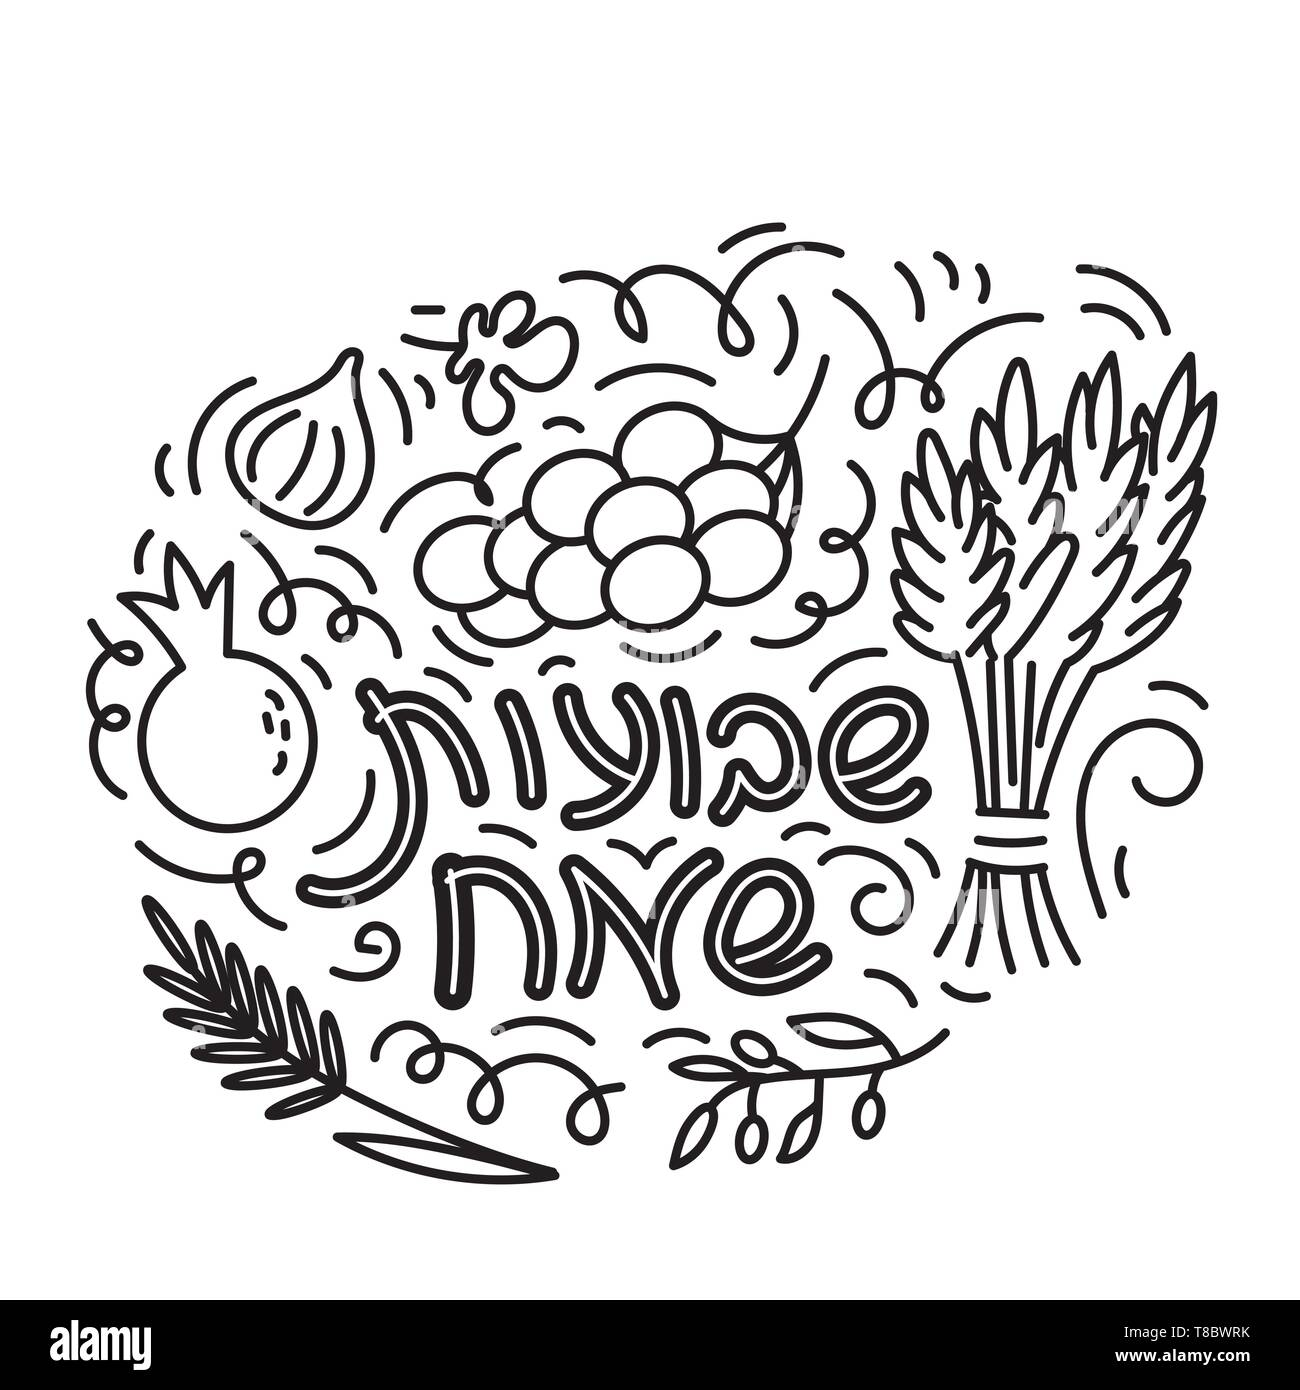 Shavuot Jewish holiday, hand drawn doodle style. Text Happy Shavuot on Hebrew. Coloring book page. Isolated on white background. Black and white vector illustration. - Stock Vector